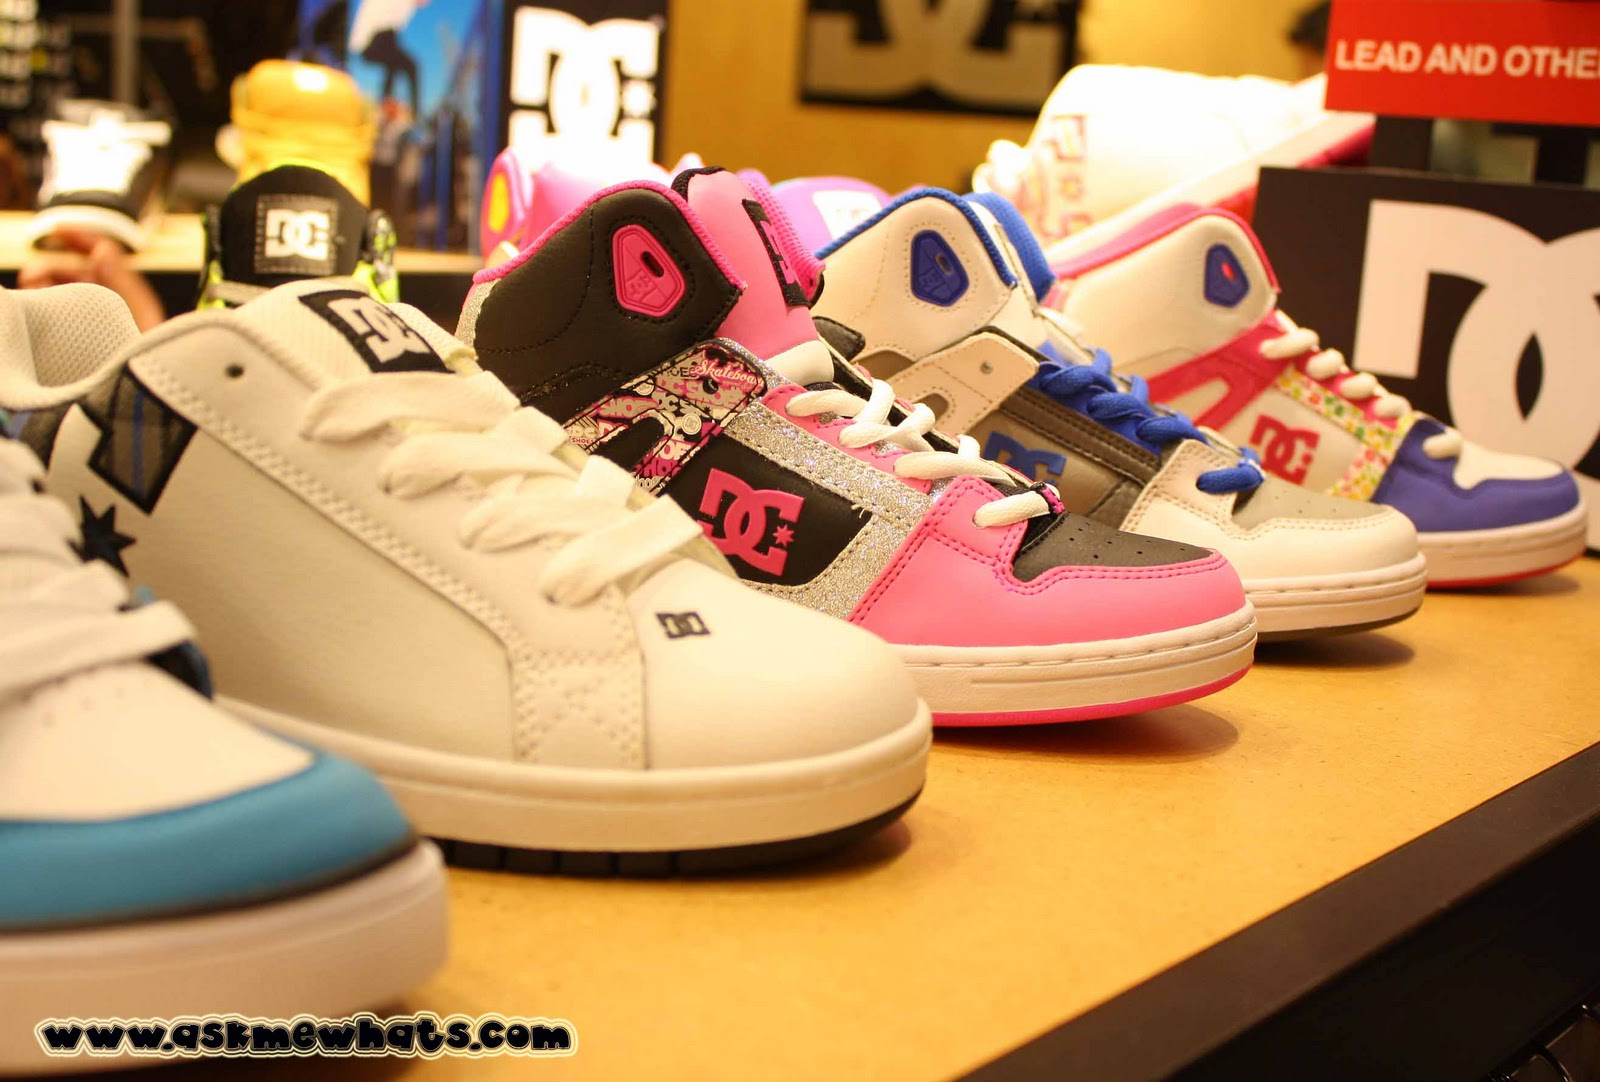 Skate shoes in cebu - One Portion Of The Store Is Dedicated For Freedom Dolly Freedom Dolly Is A Popular Brand For Skateboards Famous For Its Handmade And Ecologically Harvested